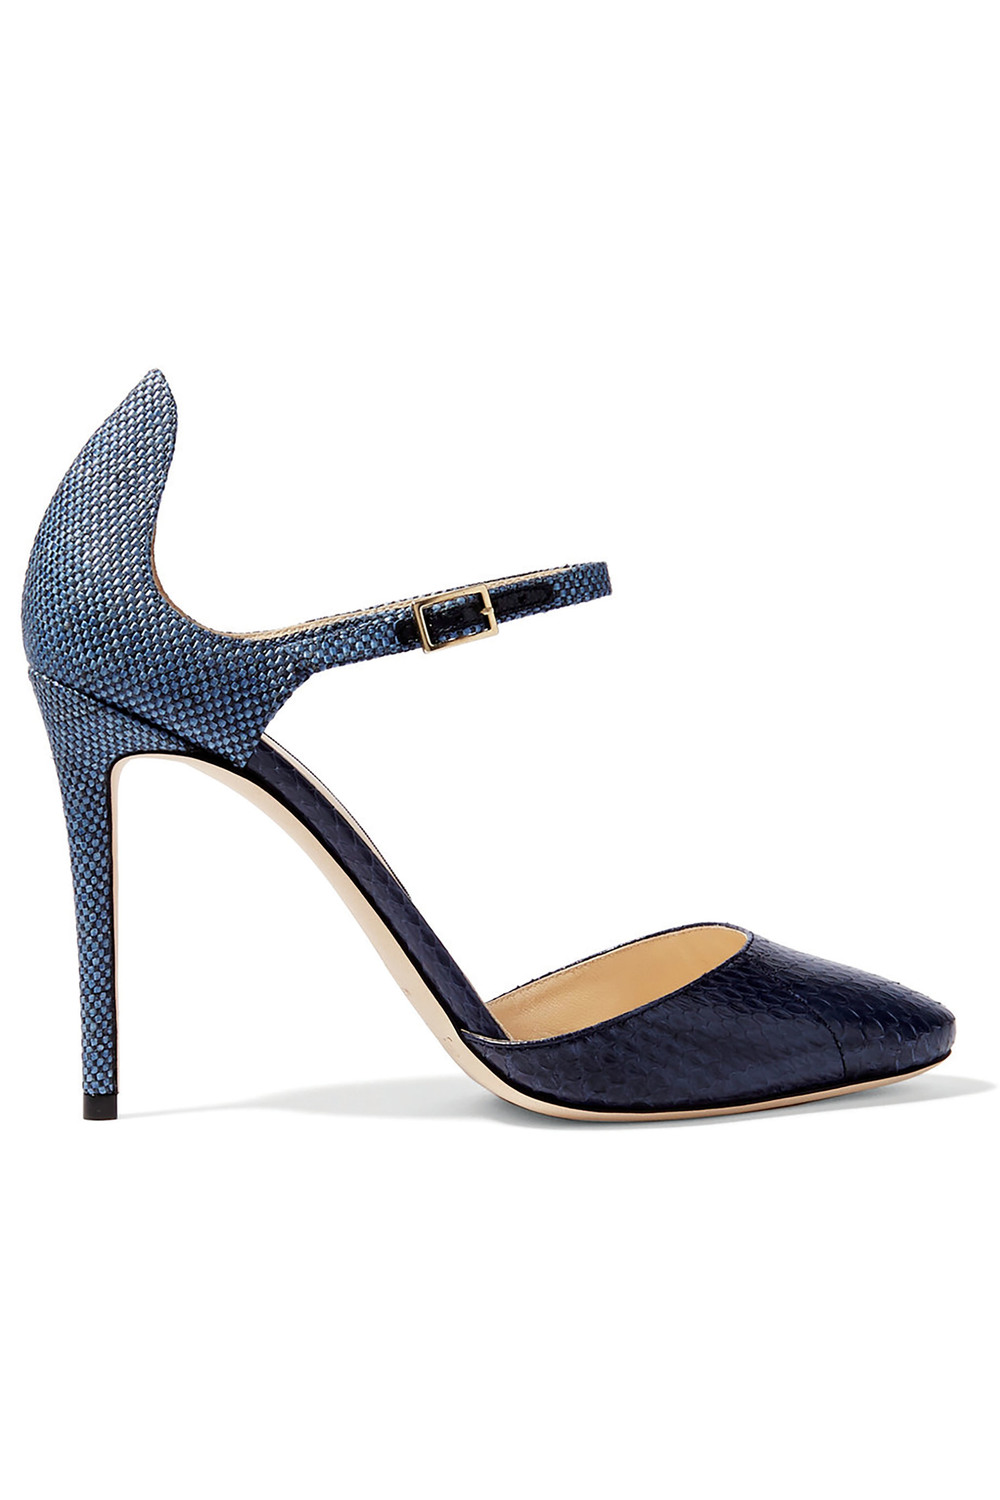 Jimmy Choo Marny Elaphe Raffia Pumps US$1,110